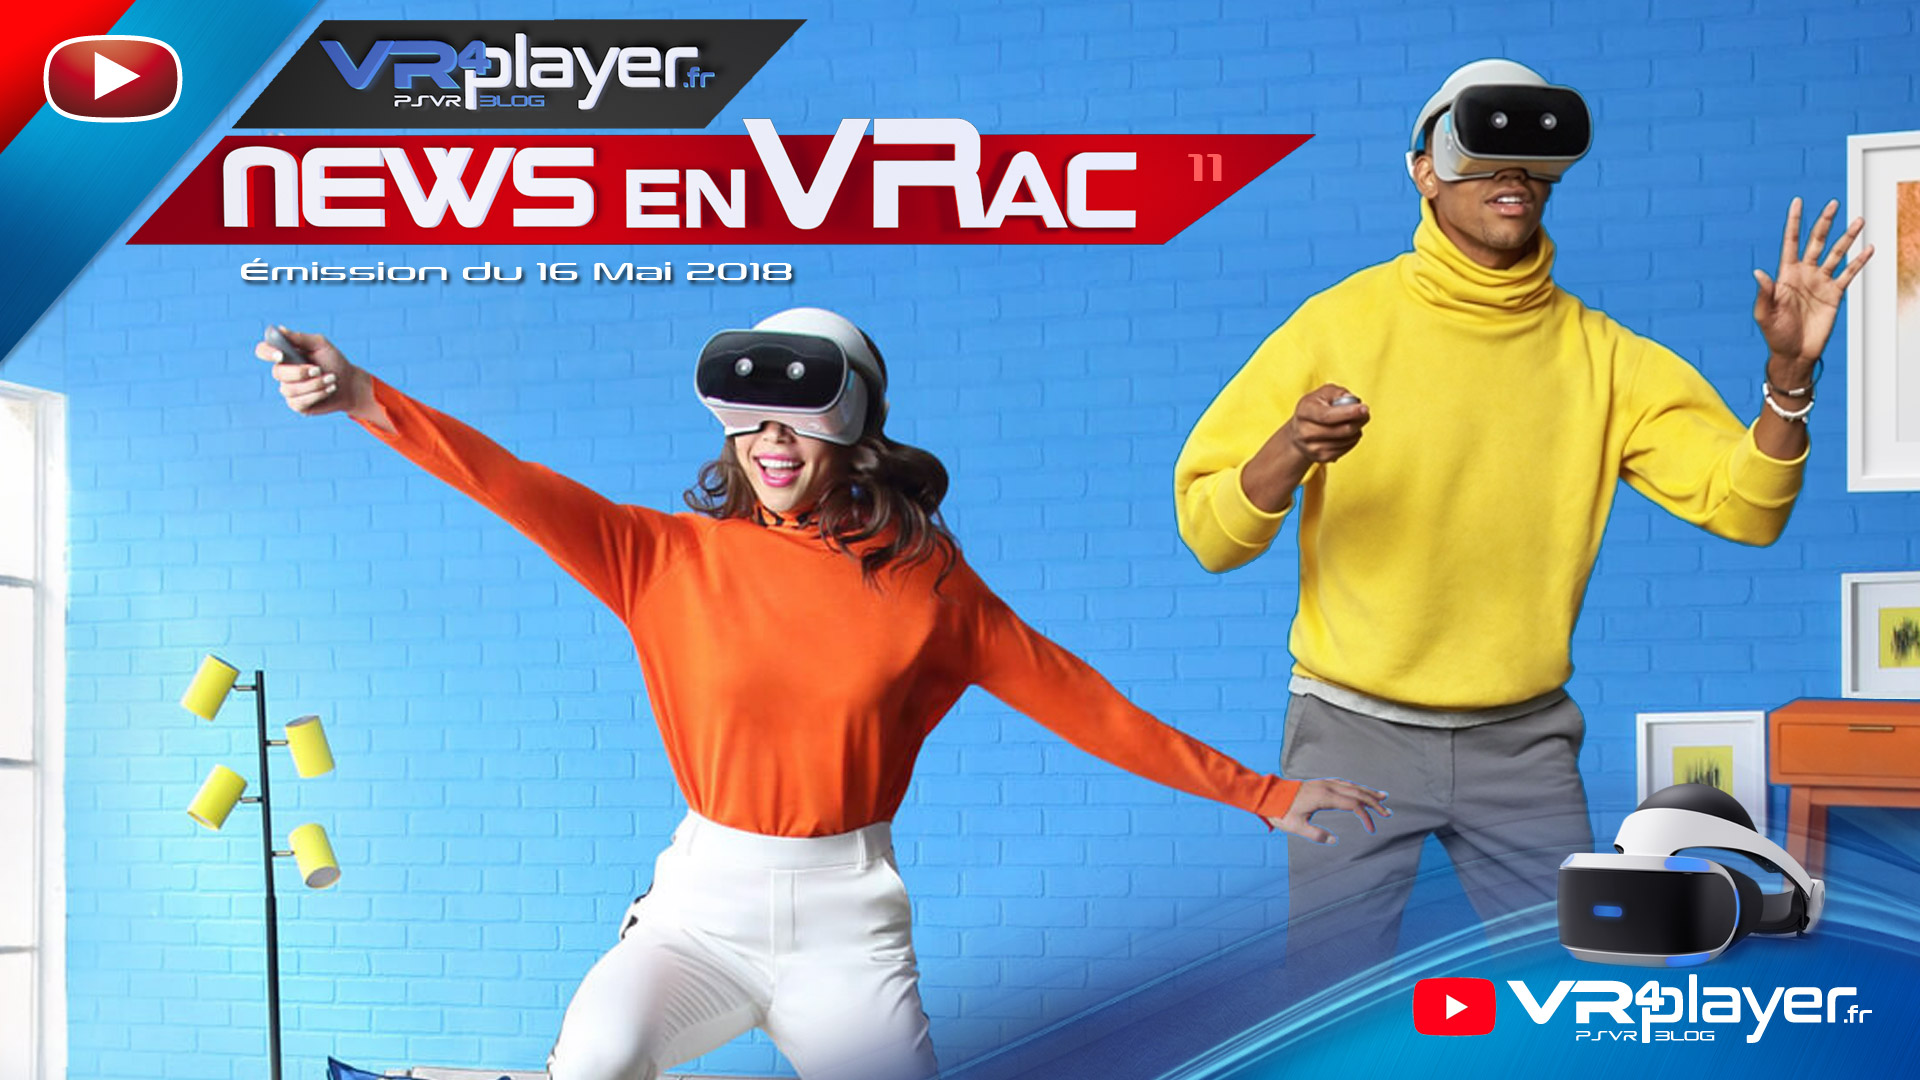 Les news en VRac émission 11 - PlayStation VR VR4Player.fr